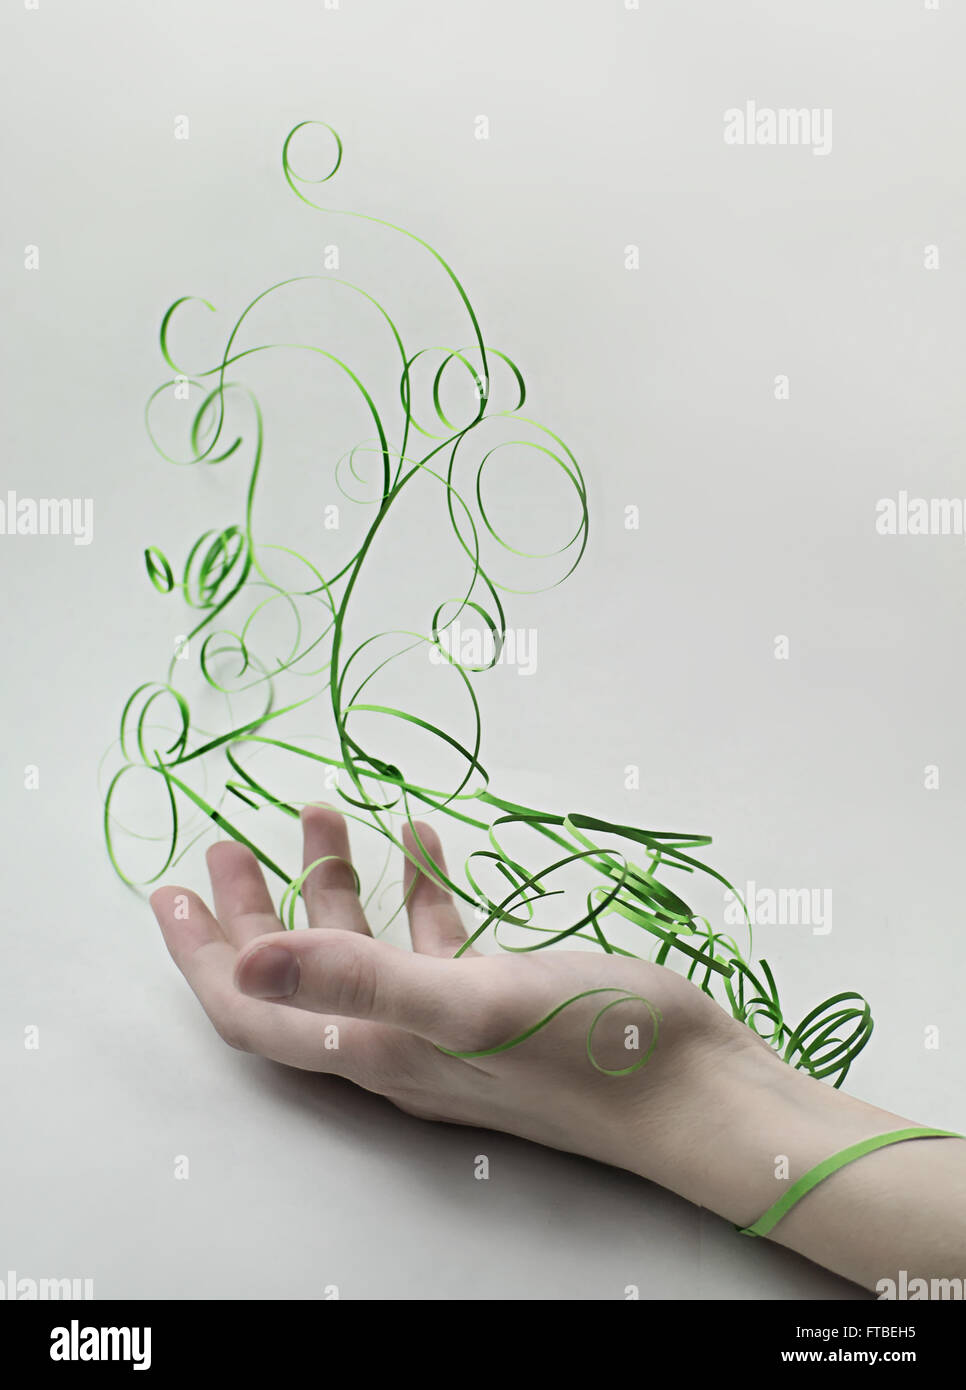 Paper Elements: Earth - Stock Image